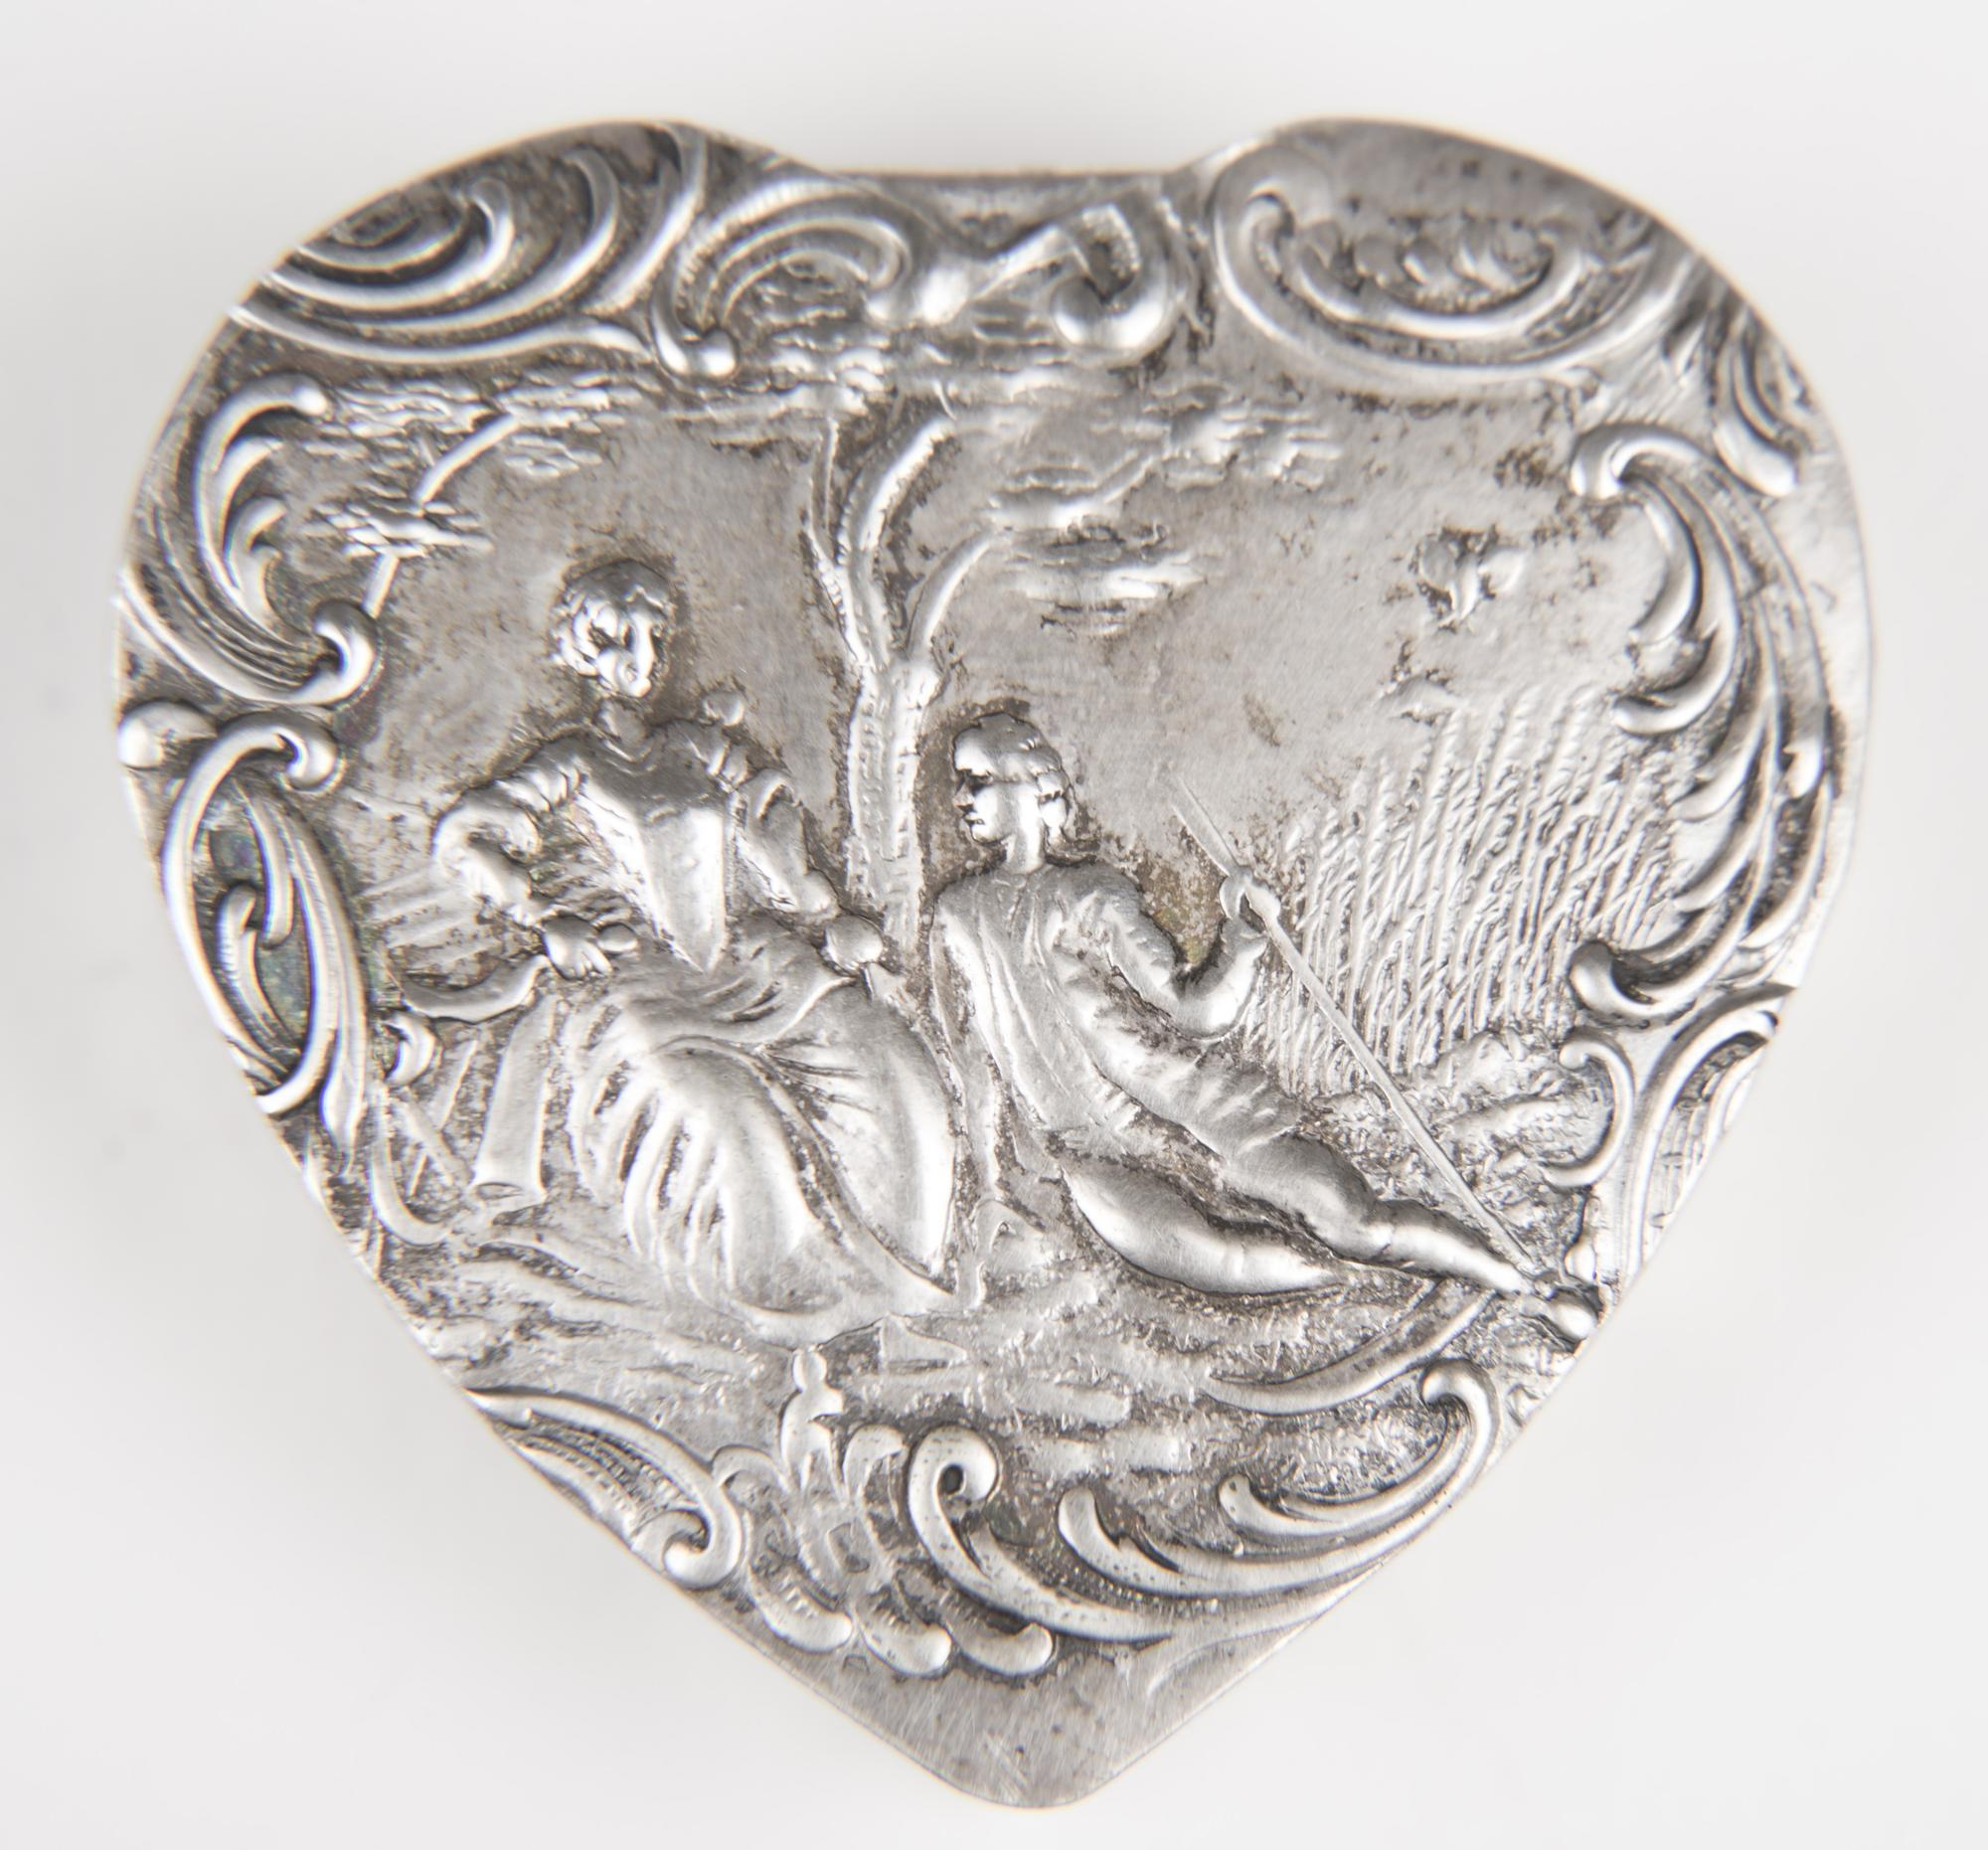 19th C. German Sterling Repousse Heart Shaped Box